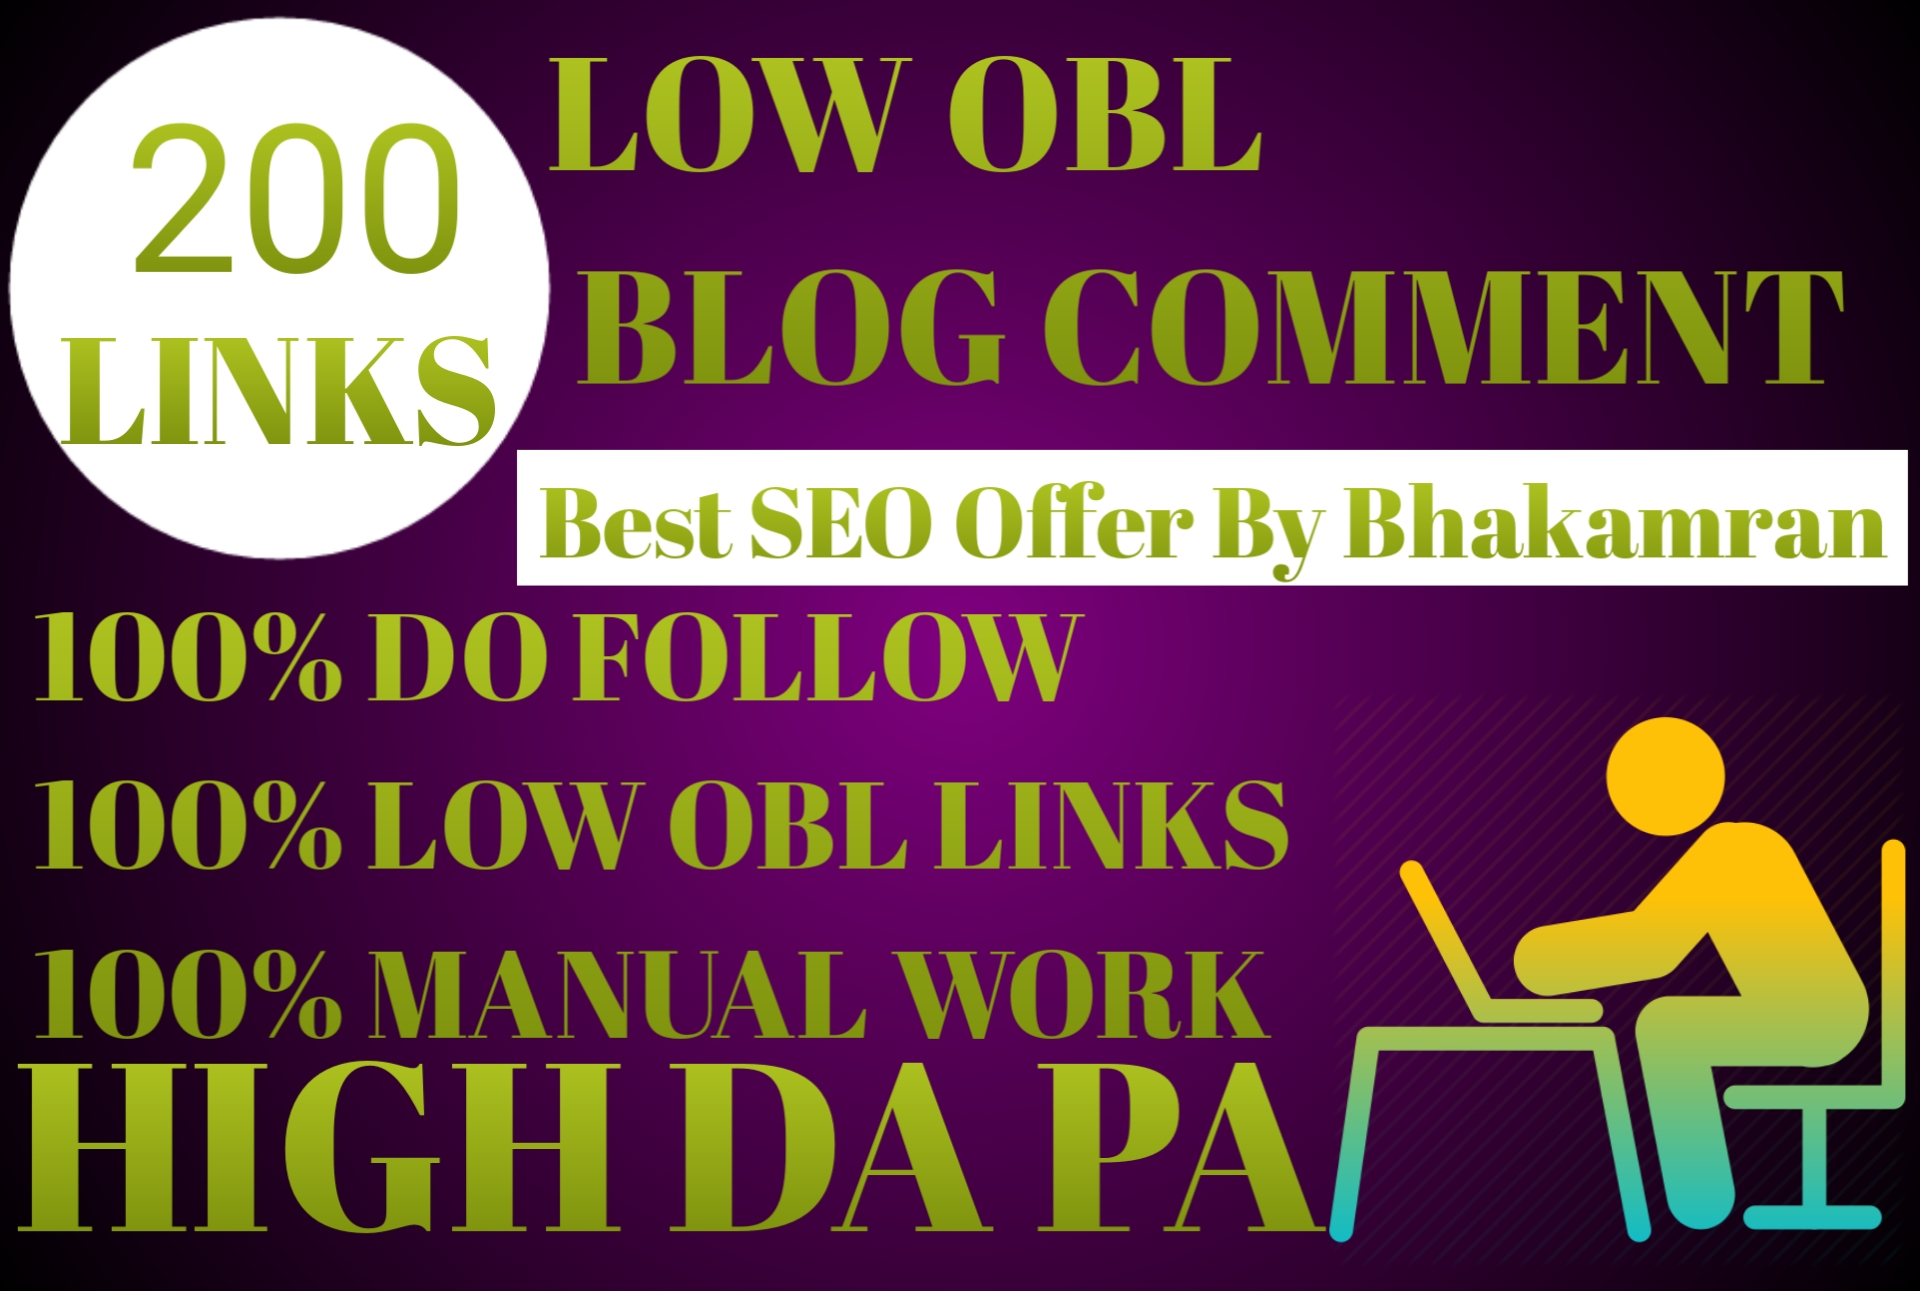 Do 200 blog comments on high DA PA backlinks